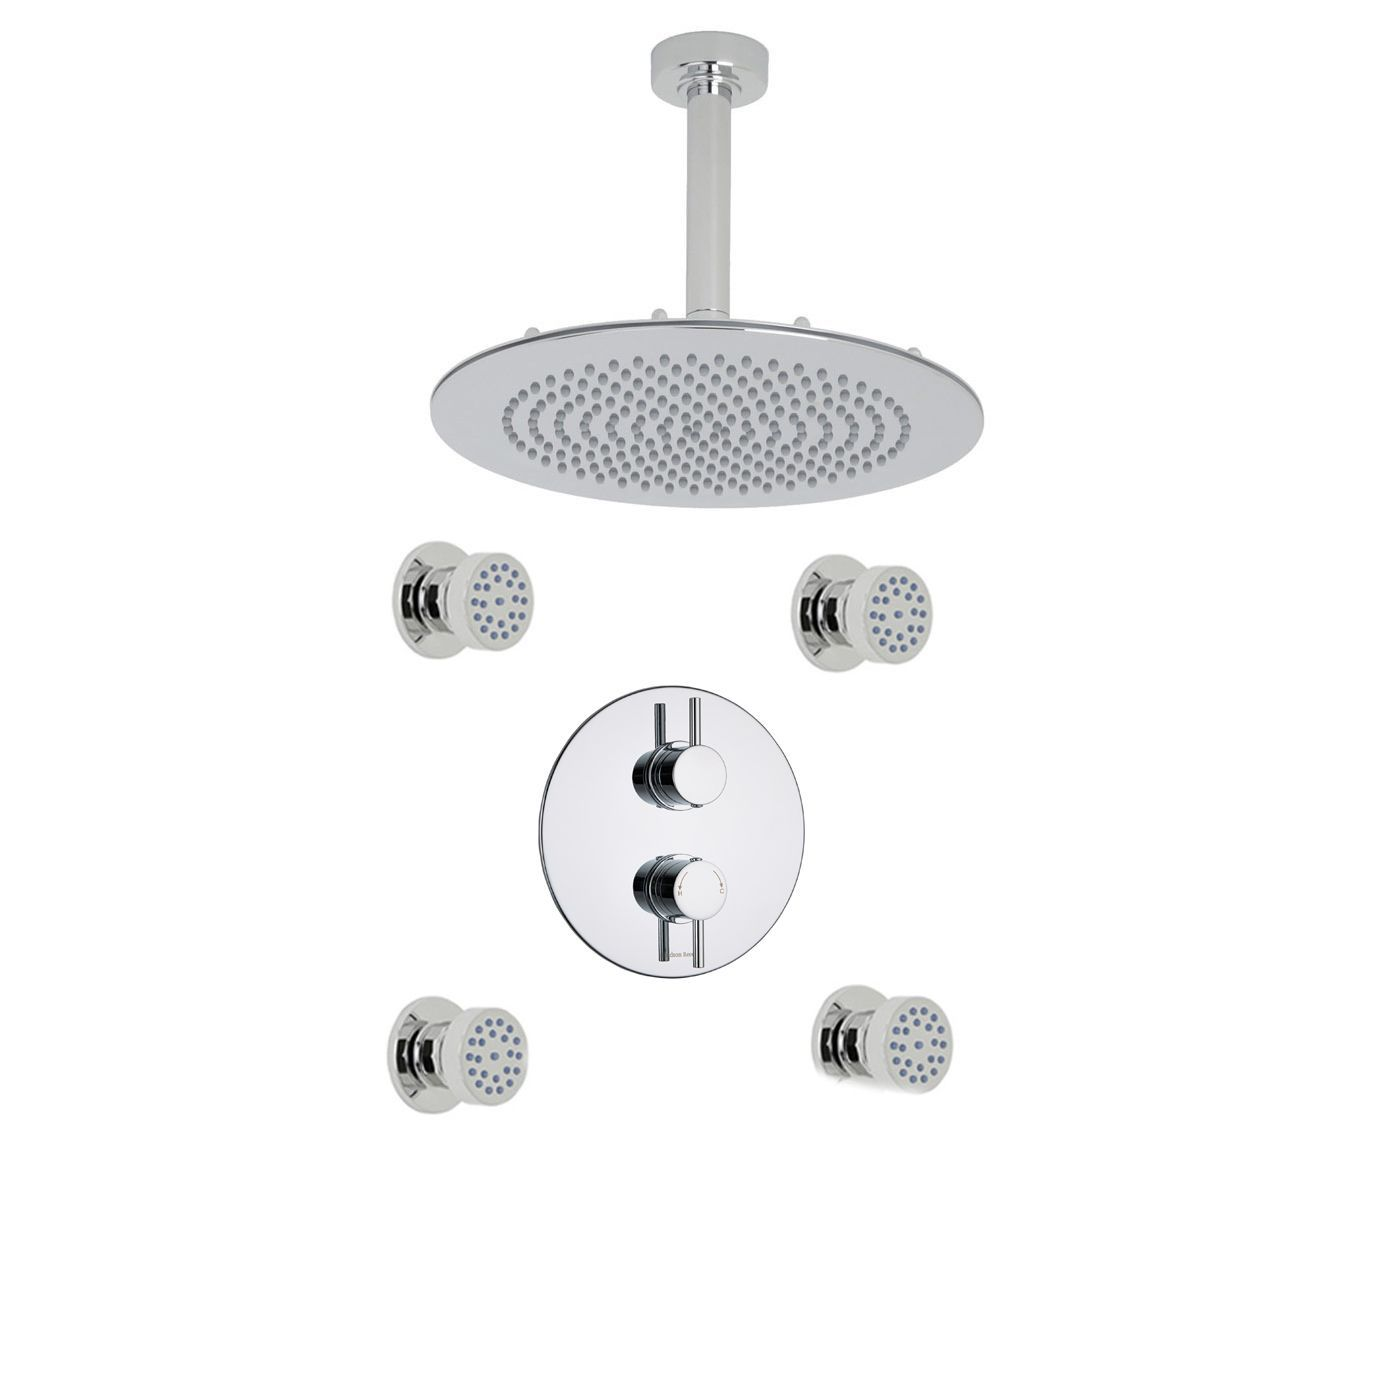 "Quest Thermostatic 2 Outlet Shower System with 4 Round Jets & 12"" Ceiling Mounted Head"